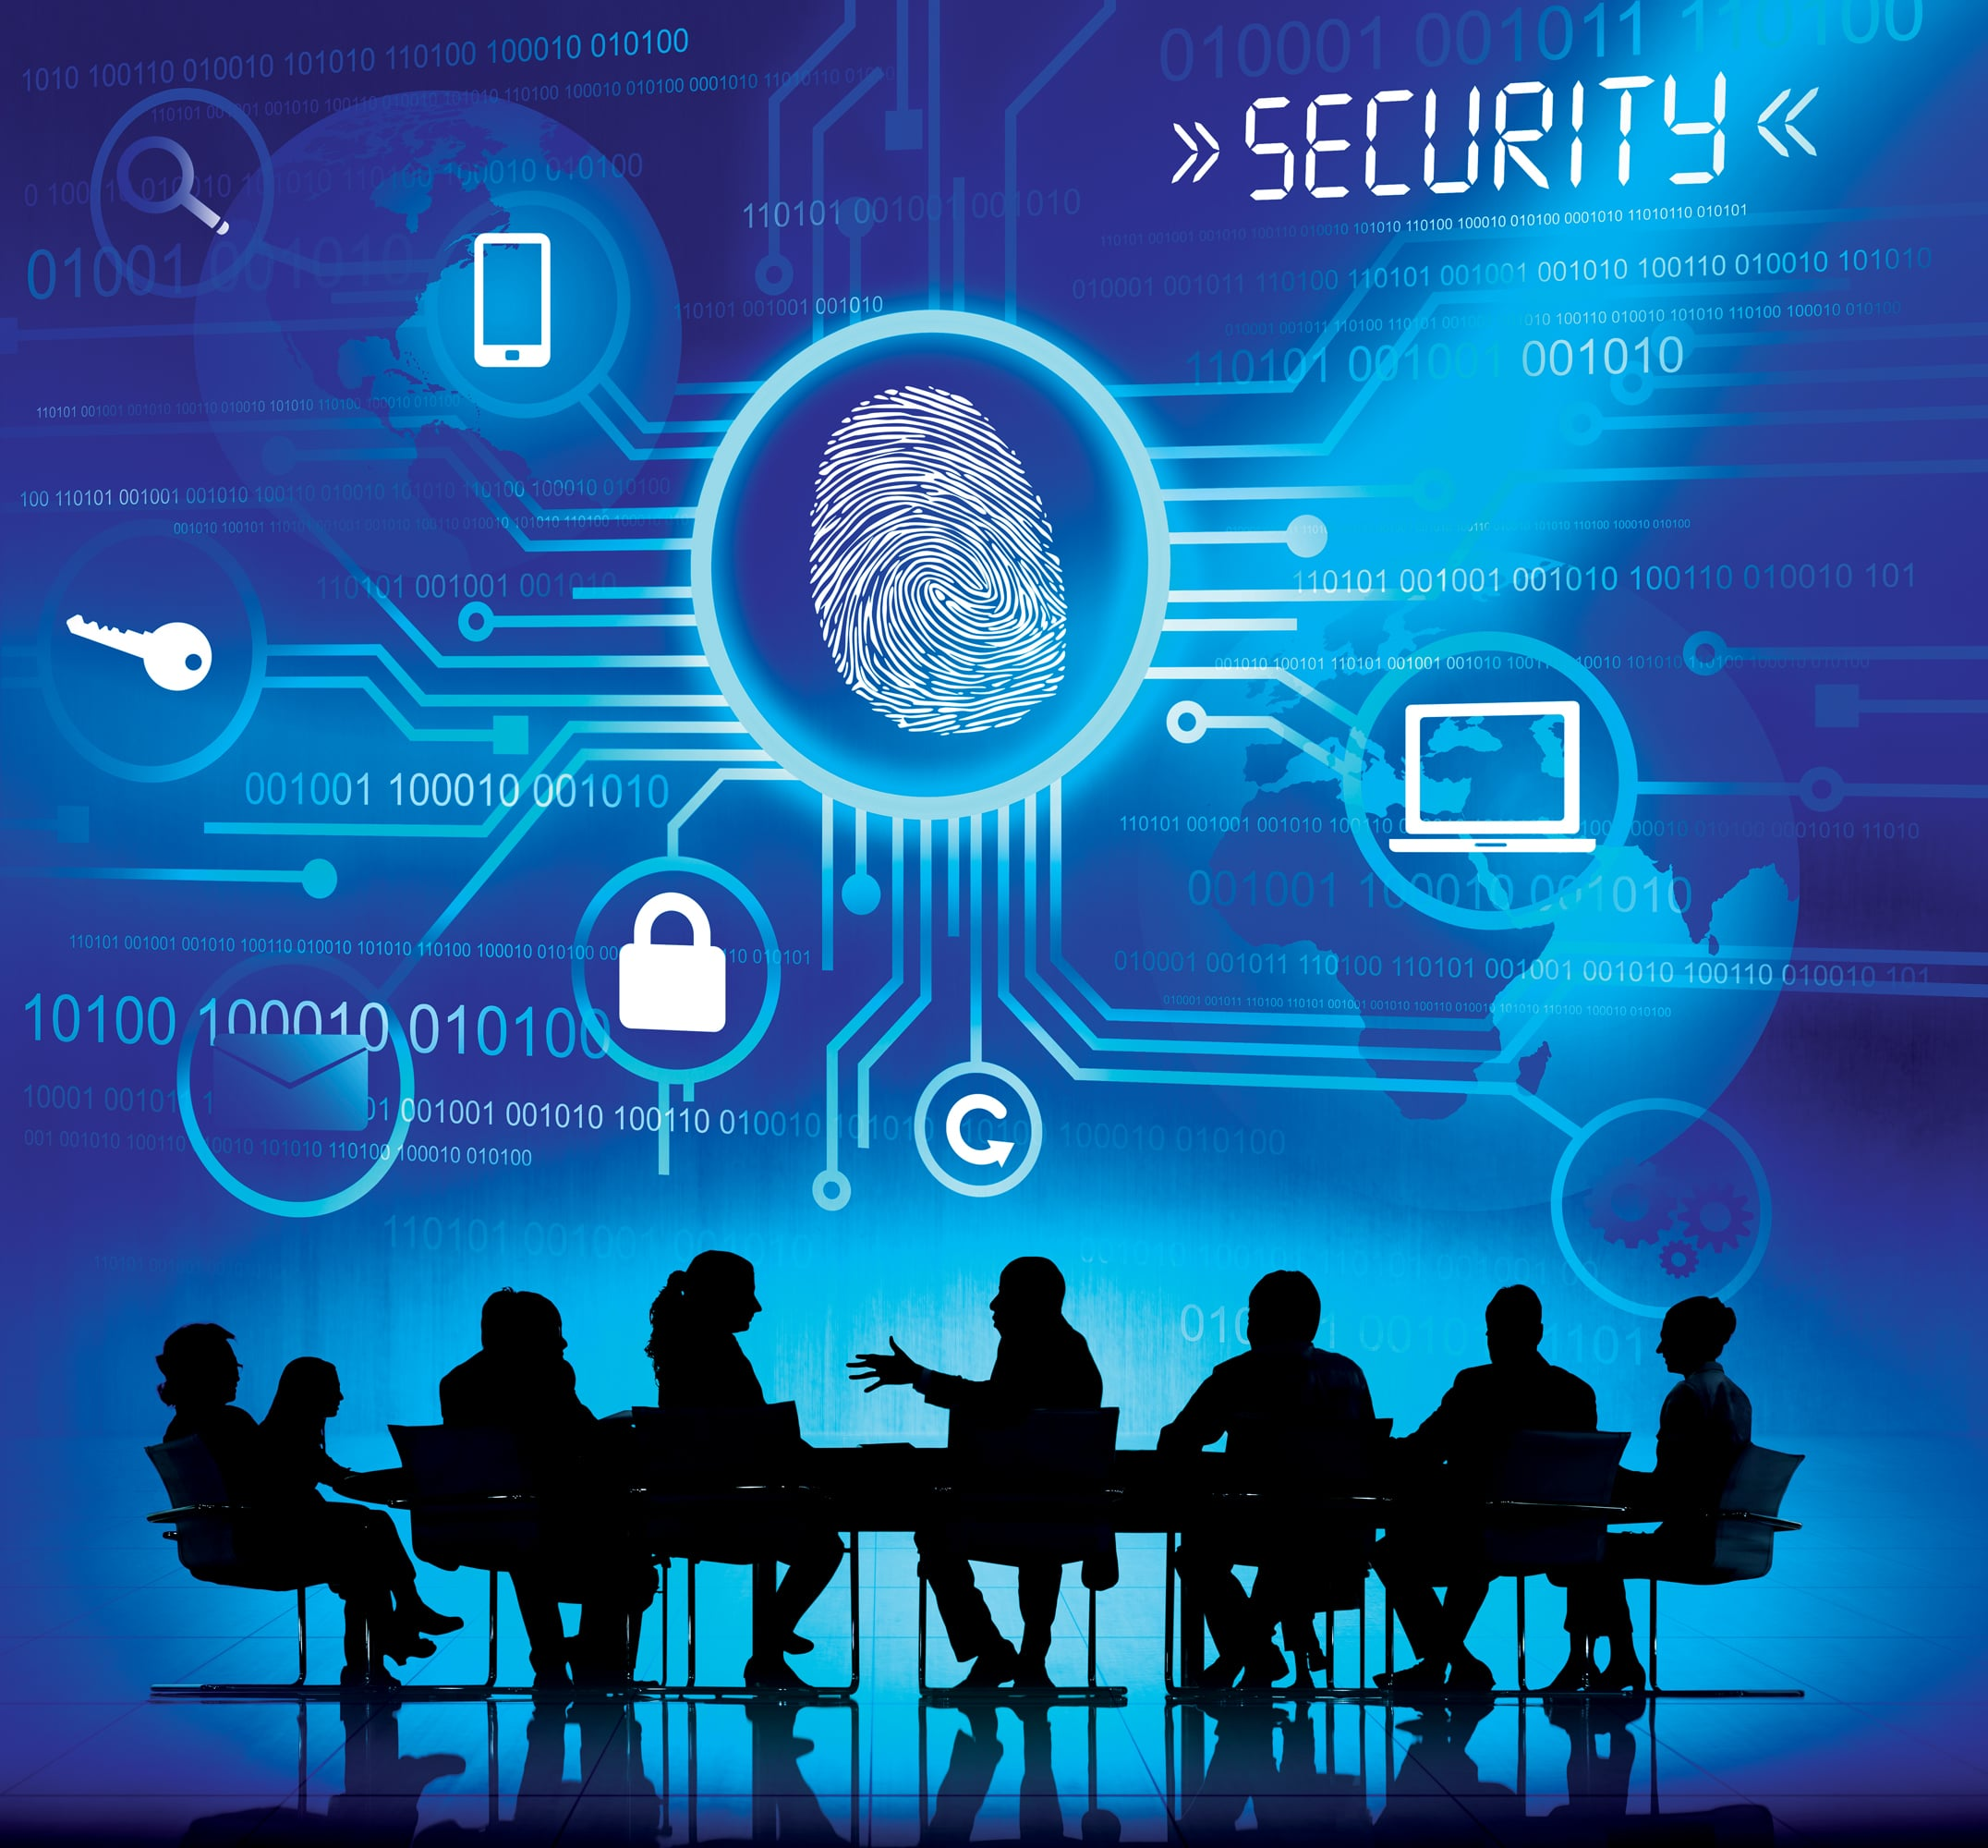 In Cyber Security The Executive Board S Role In Cybersecurity Ethical Boardroom